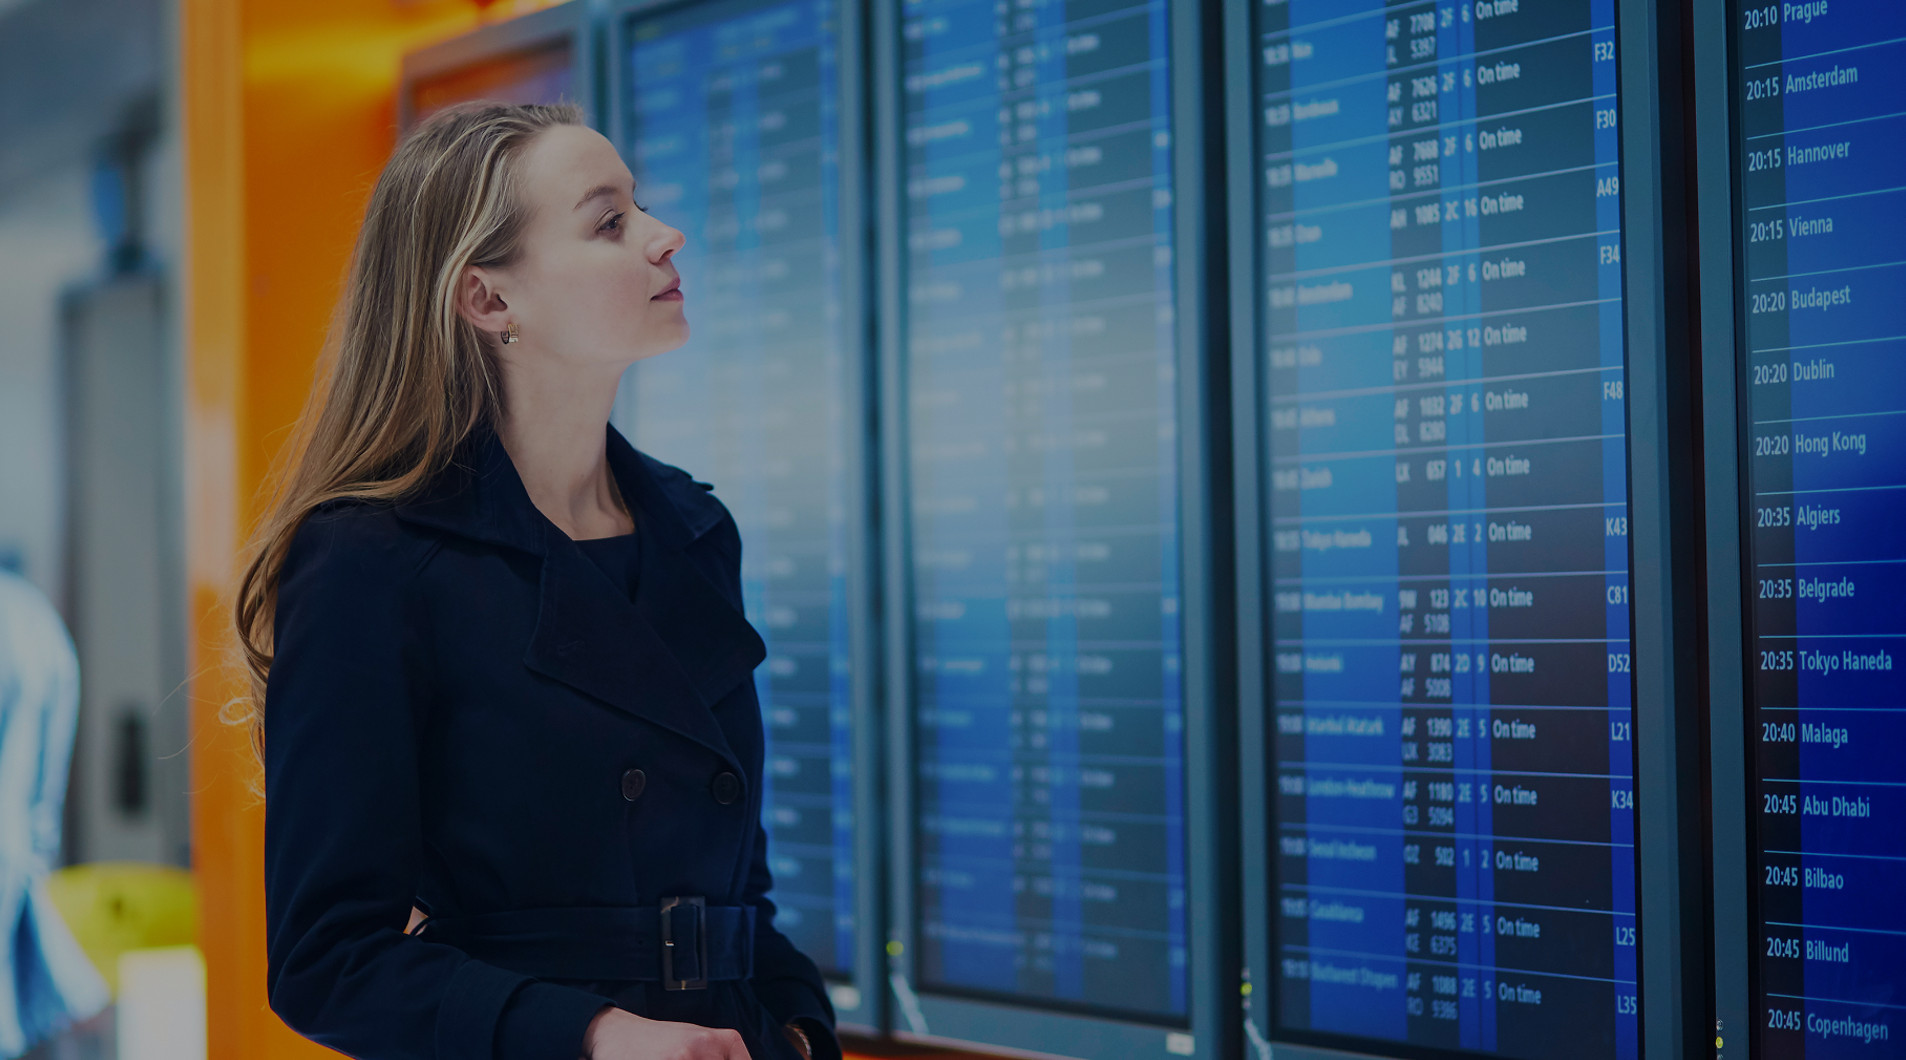 Data Solutions Flight Information Database